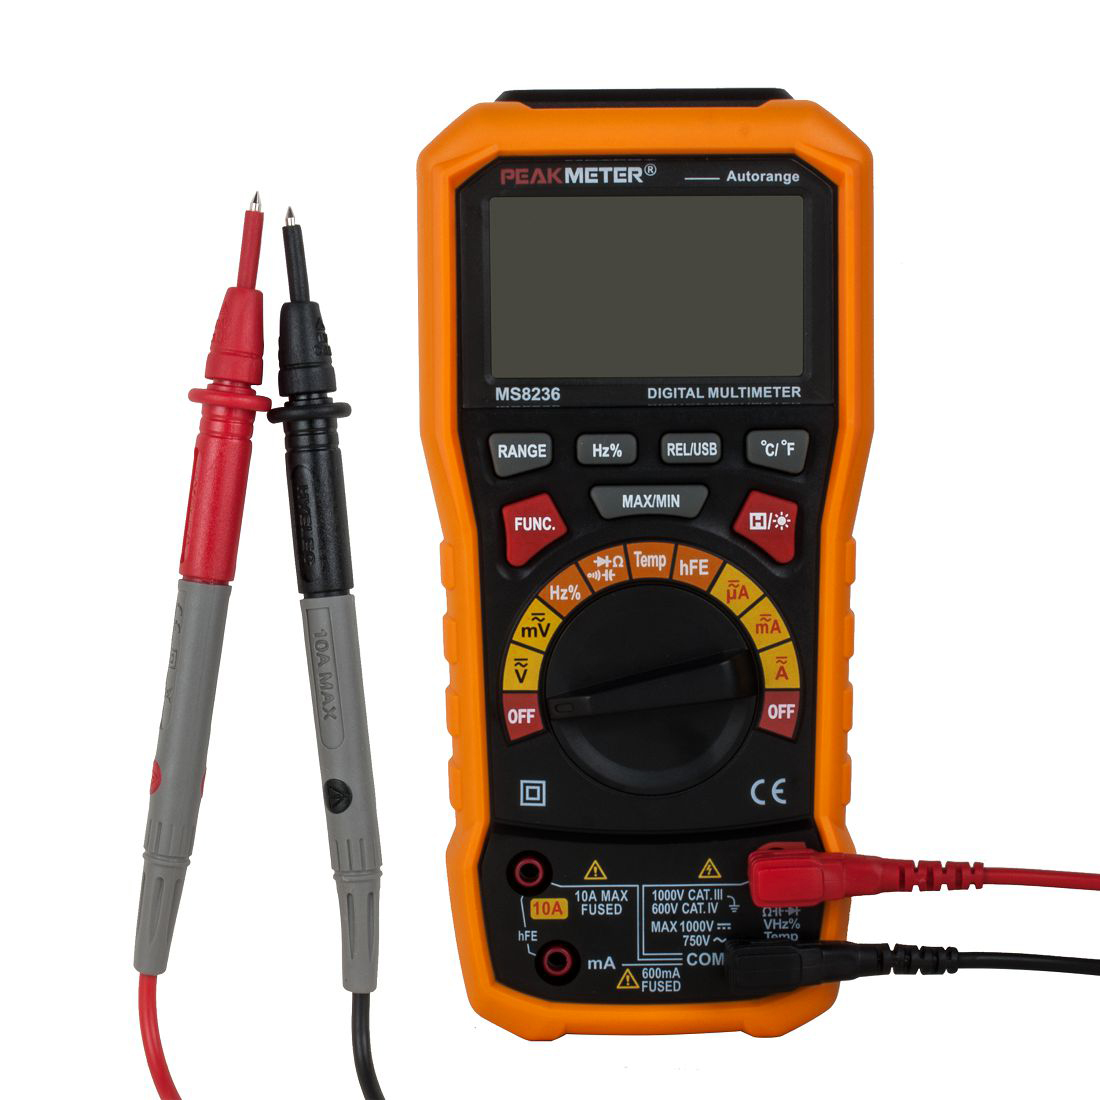 UXCELL Digital Multimeter Ac/ Voltage Current Resistance Capacitance Frequency Temperature Tester Meter 600mv/6v/60v/600v/1000v auto range handheld 3 3 4 digital multimeter mastech ms8239c ac dc voltage current capacitance frequency temperature tester